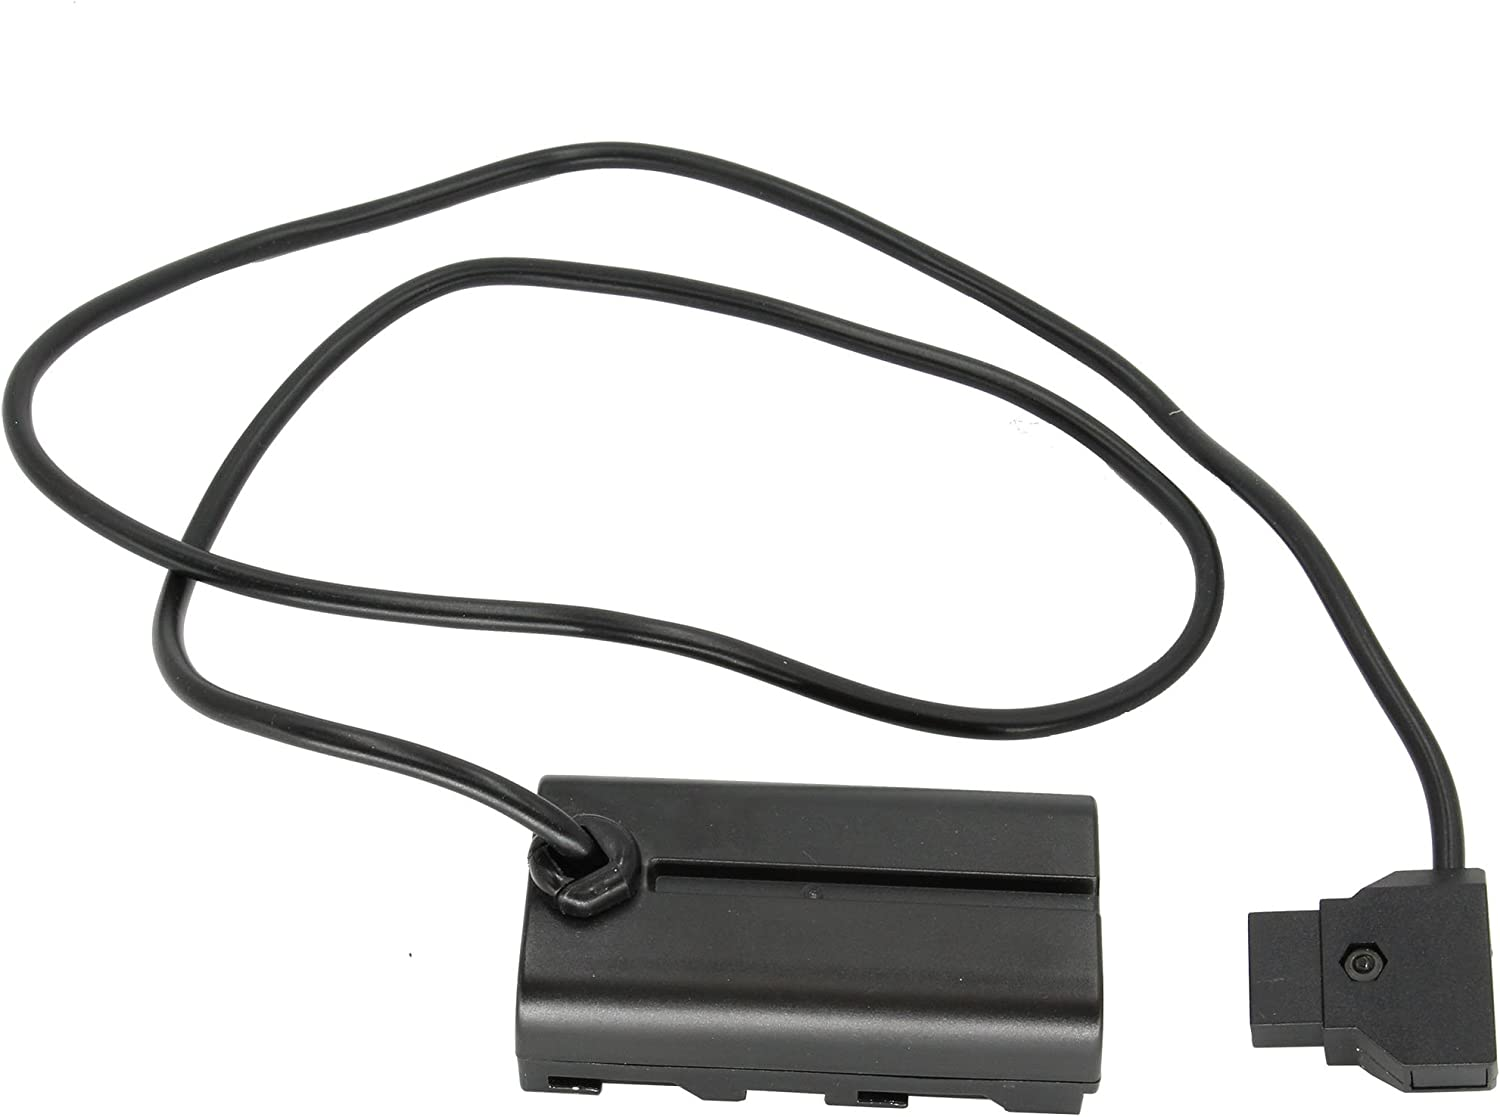 """NP-F970 Sony-L Batteries to Power DCRVX2100 HDRFX1 NP-F570 V12 HD1000U /& HVRZ1U Cameras 4.5A D-Tap to Dummy Battery 30/"""" Straight Adapter Cable to Replace NP-F550 GyroVu High Power"""